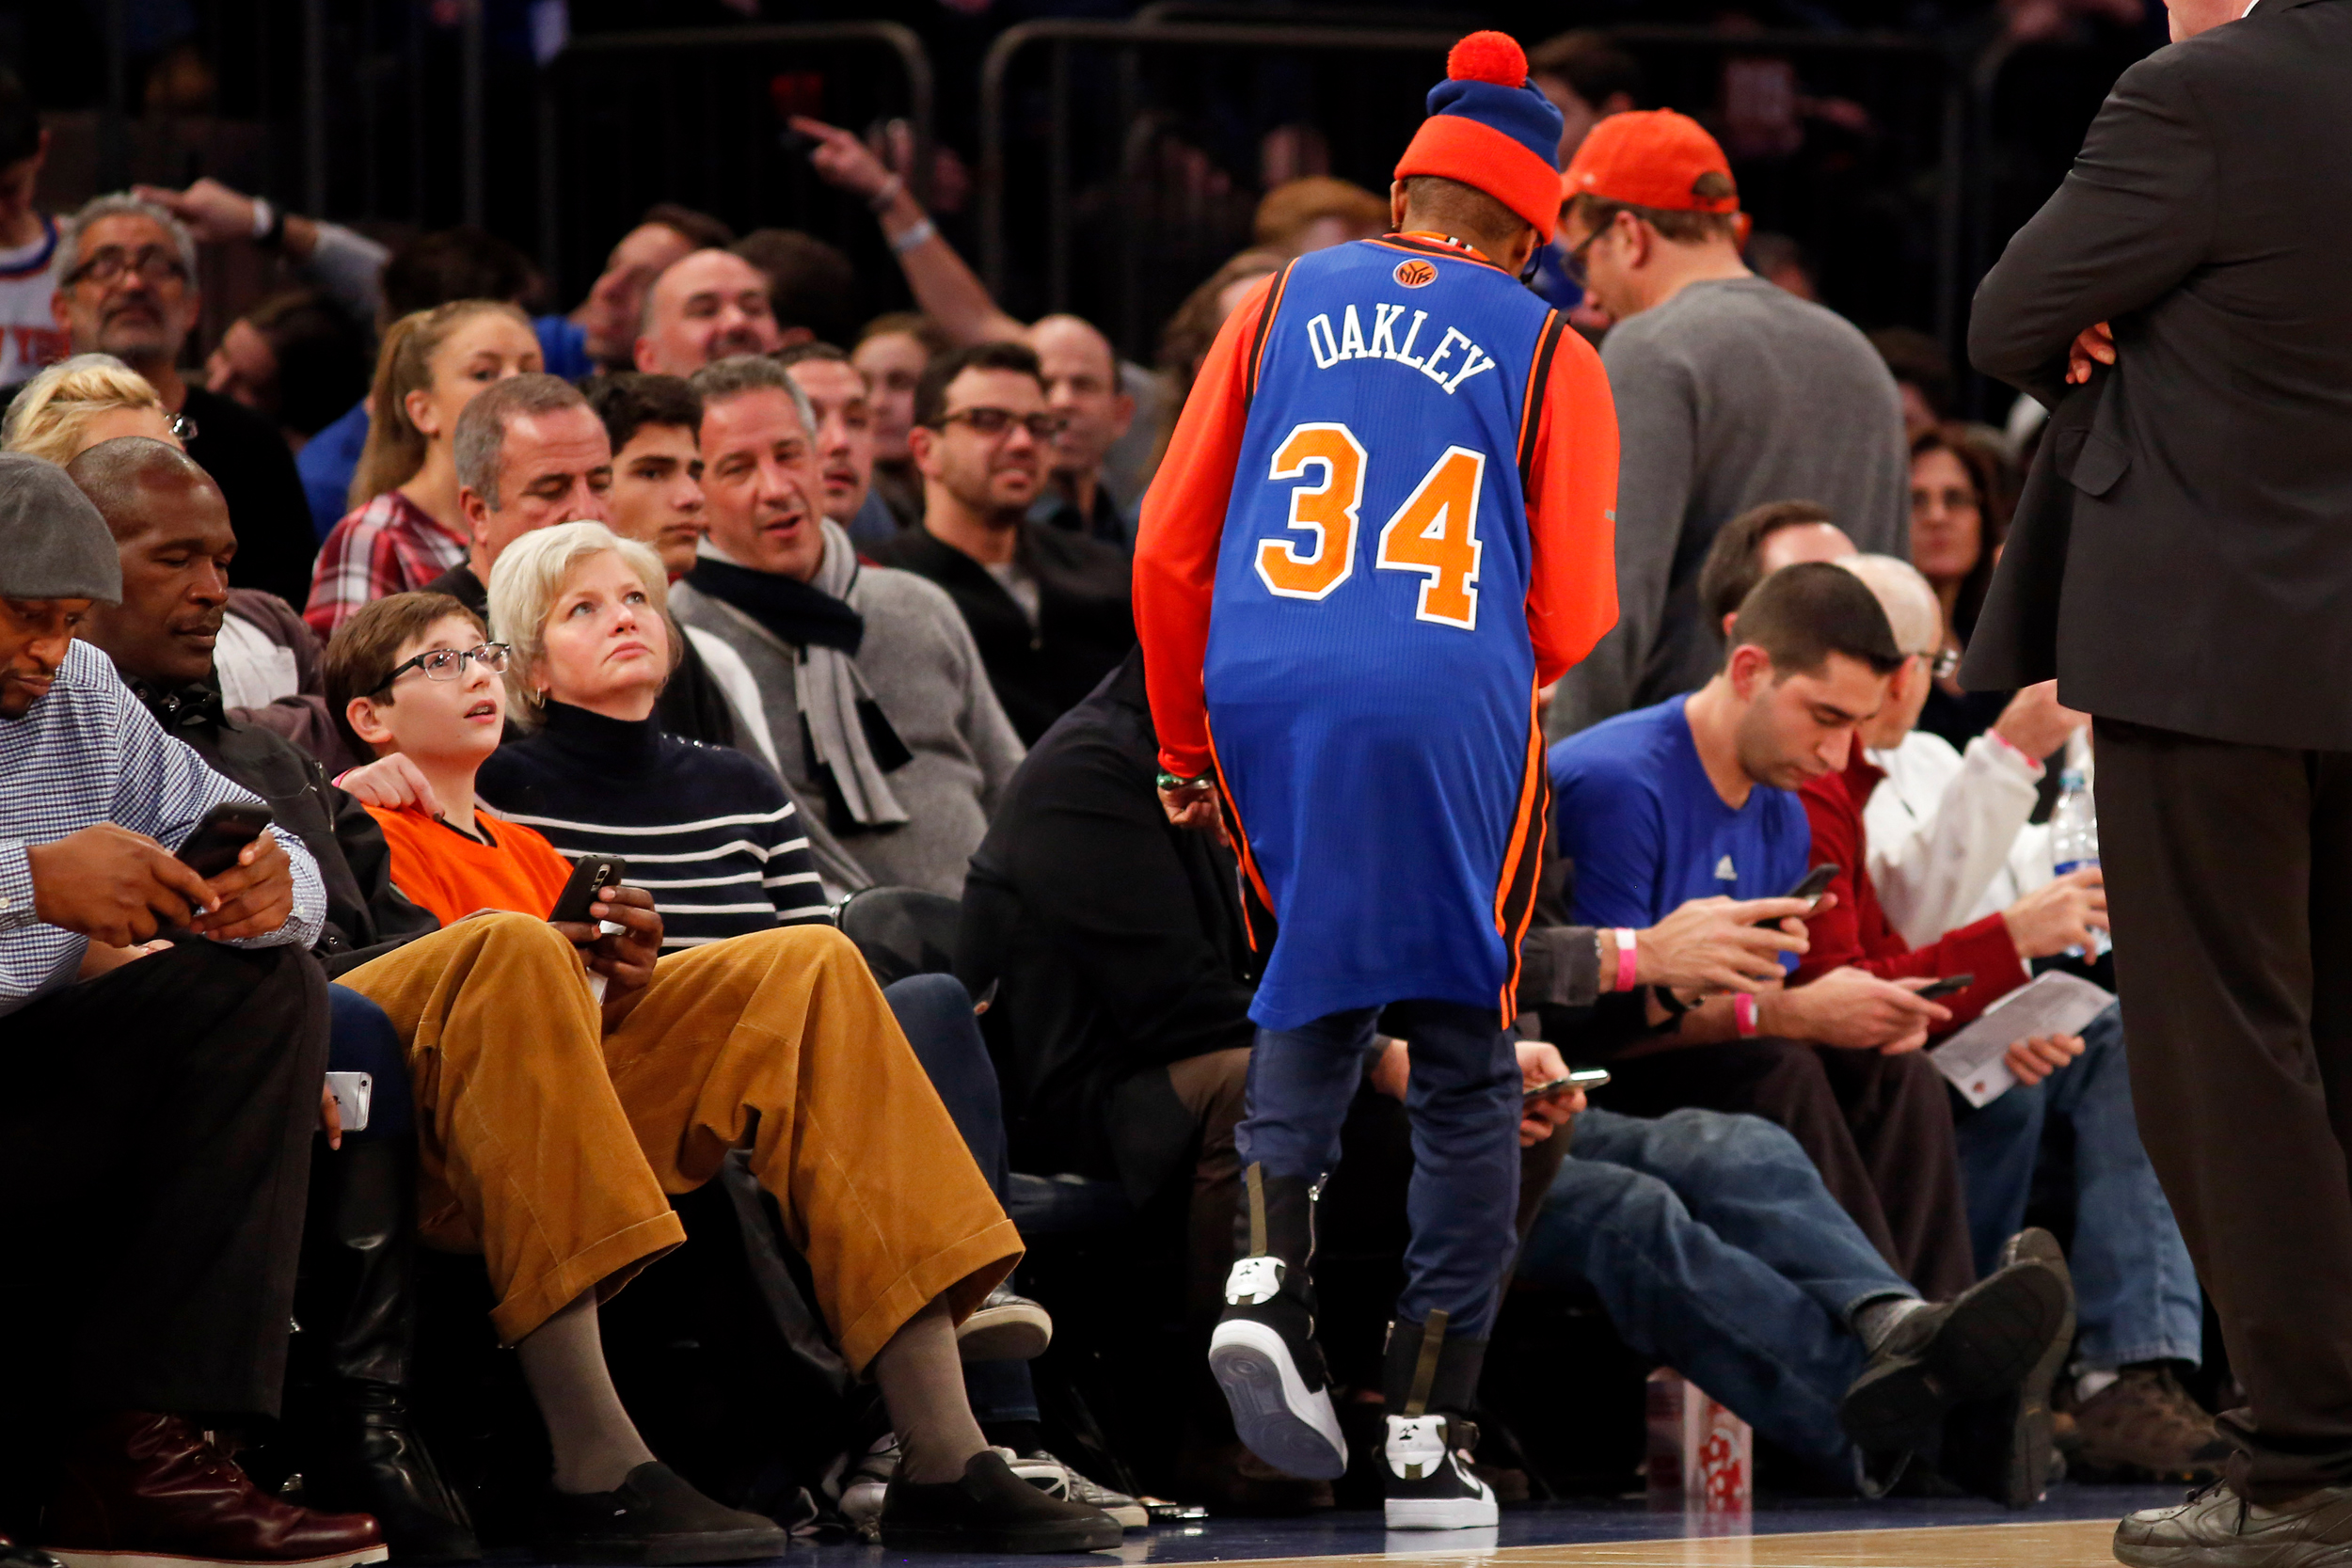 Wearing a Charles Oakley jersey director Spike Lee returns to his seat during the second half against the San Antonio Spurs at Madison Square Garden.